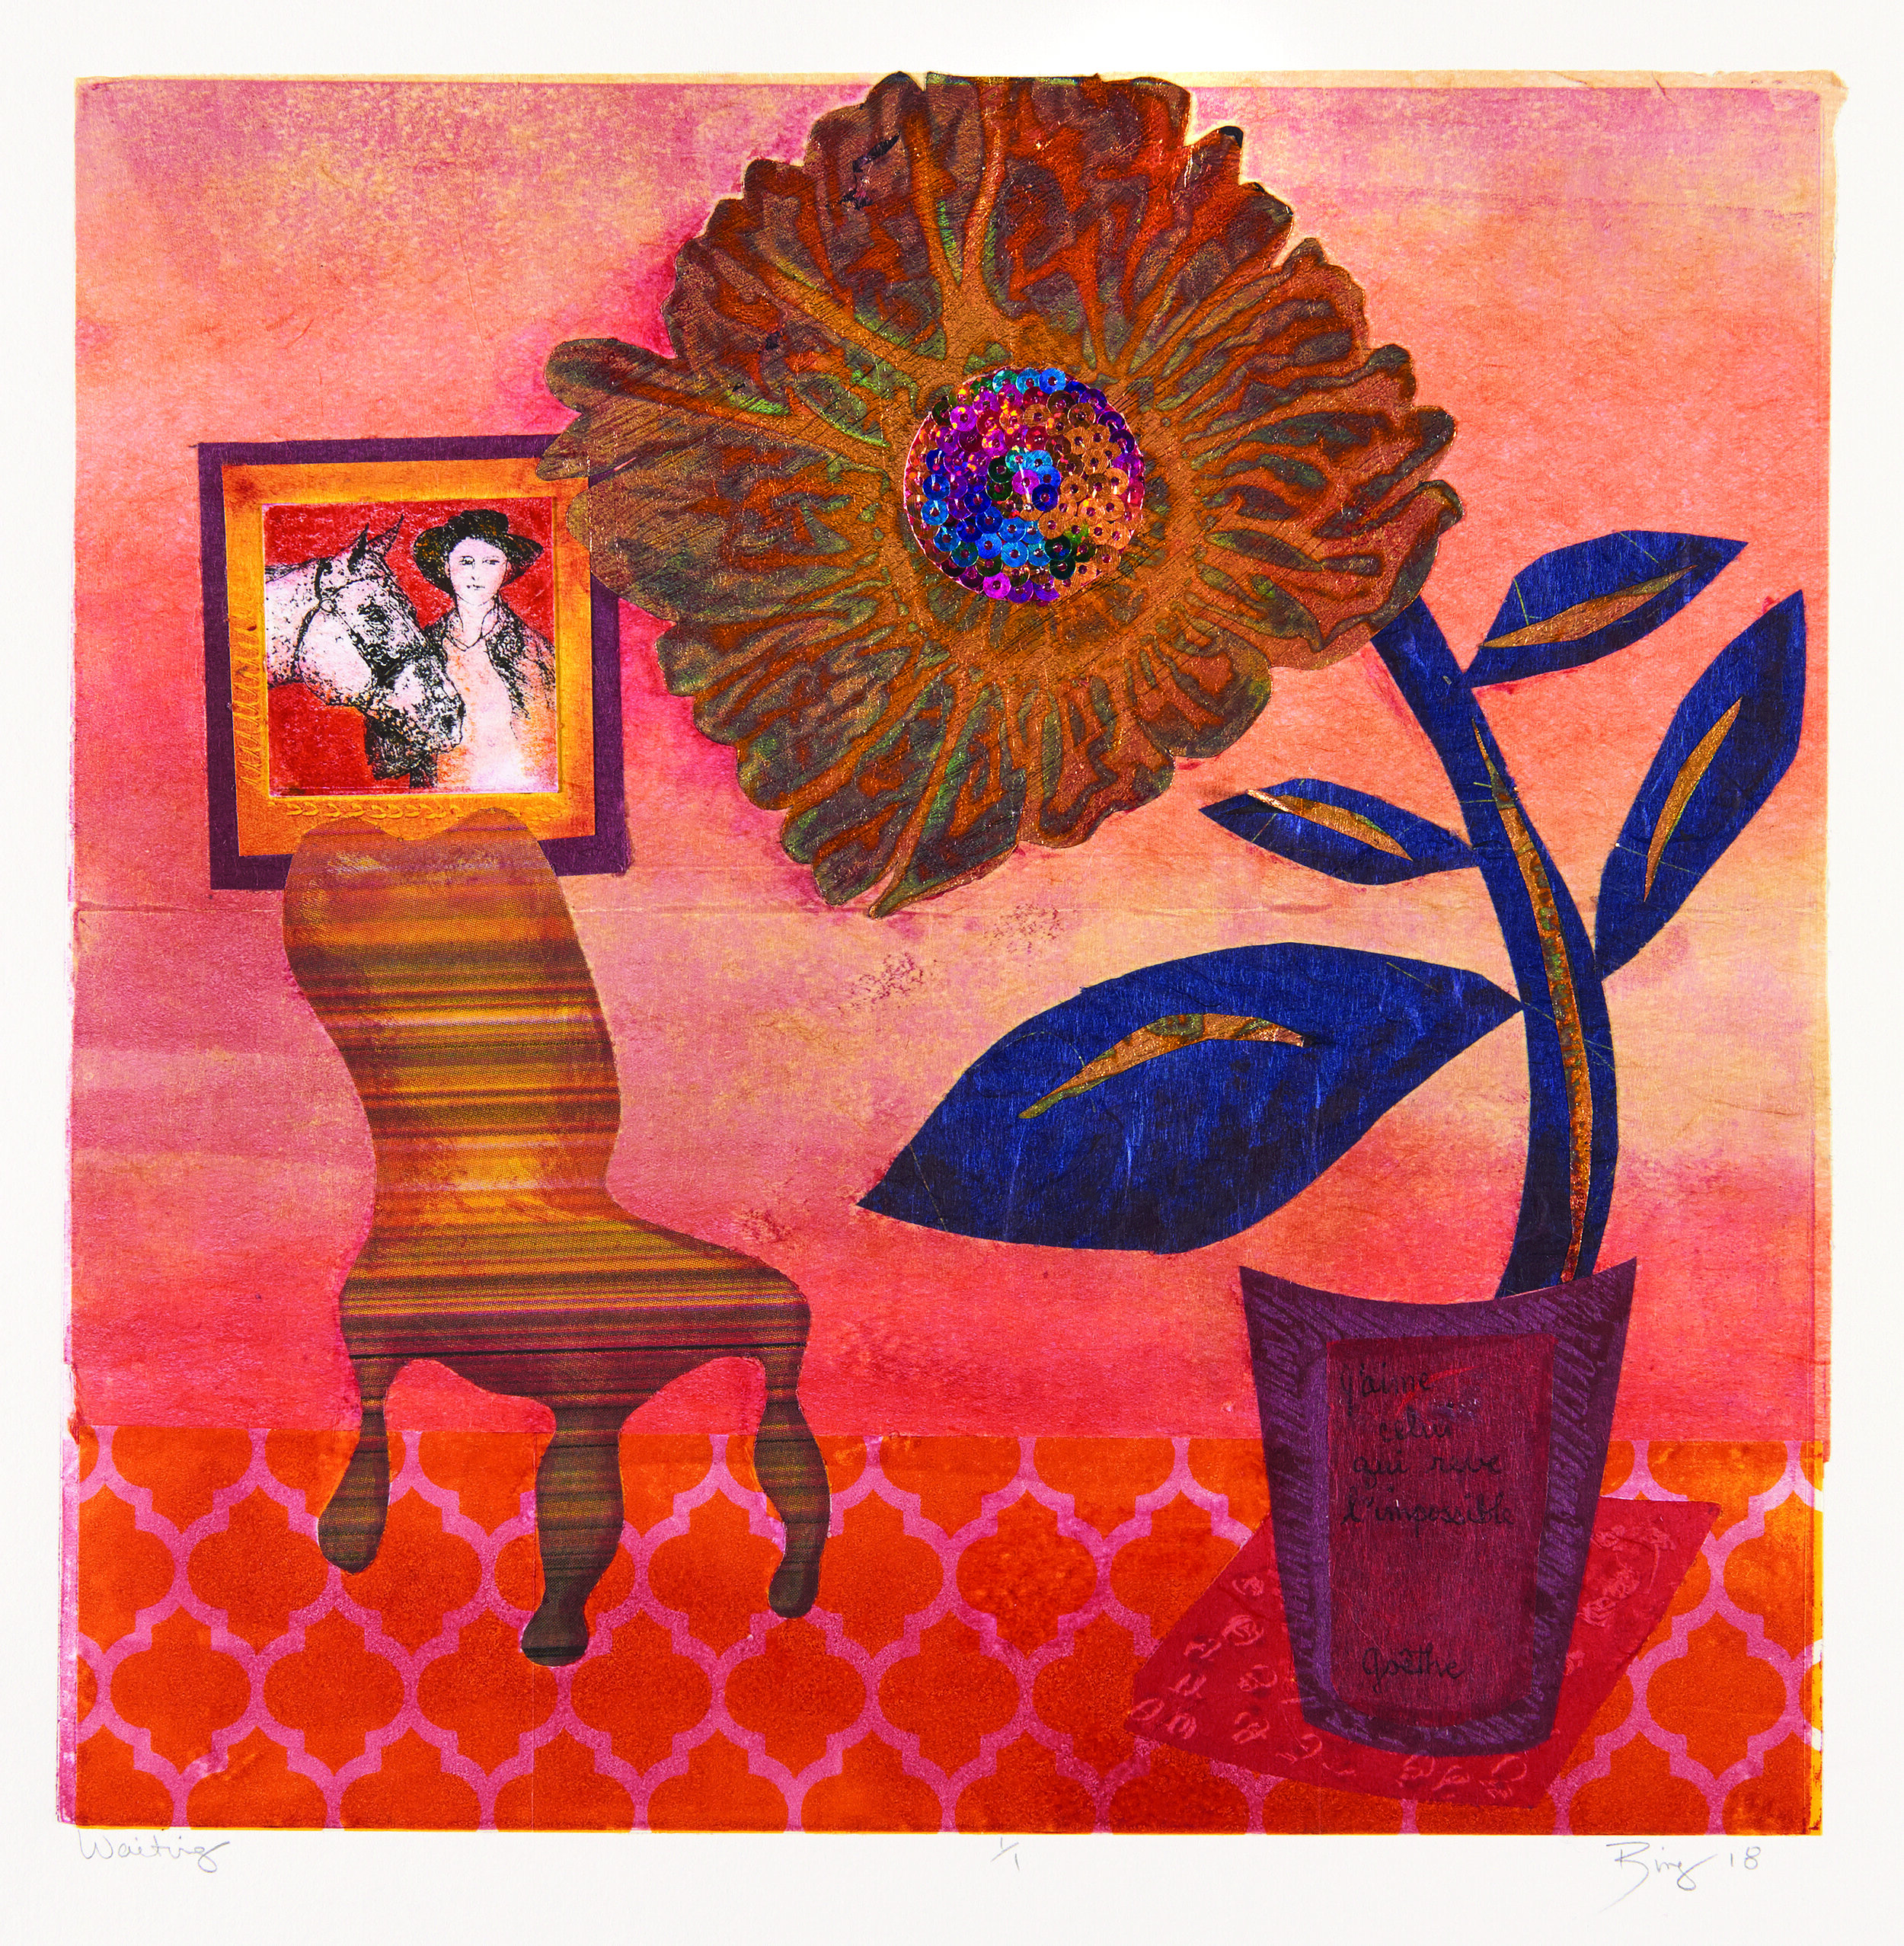 Monotype print of a orange room with textured floor, chair and flower.